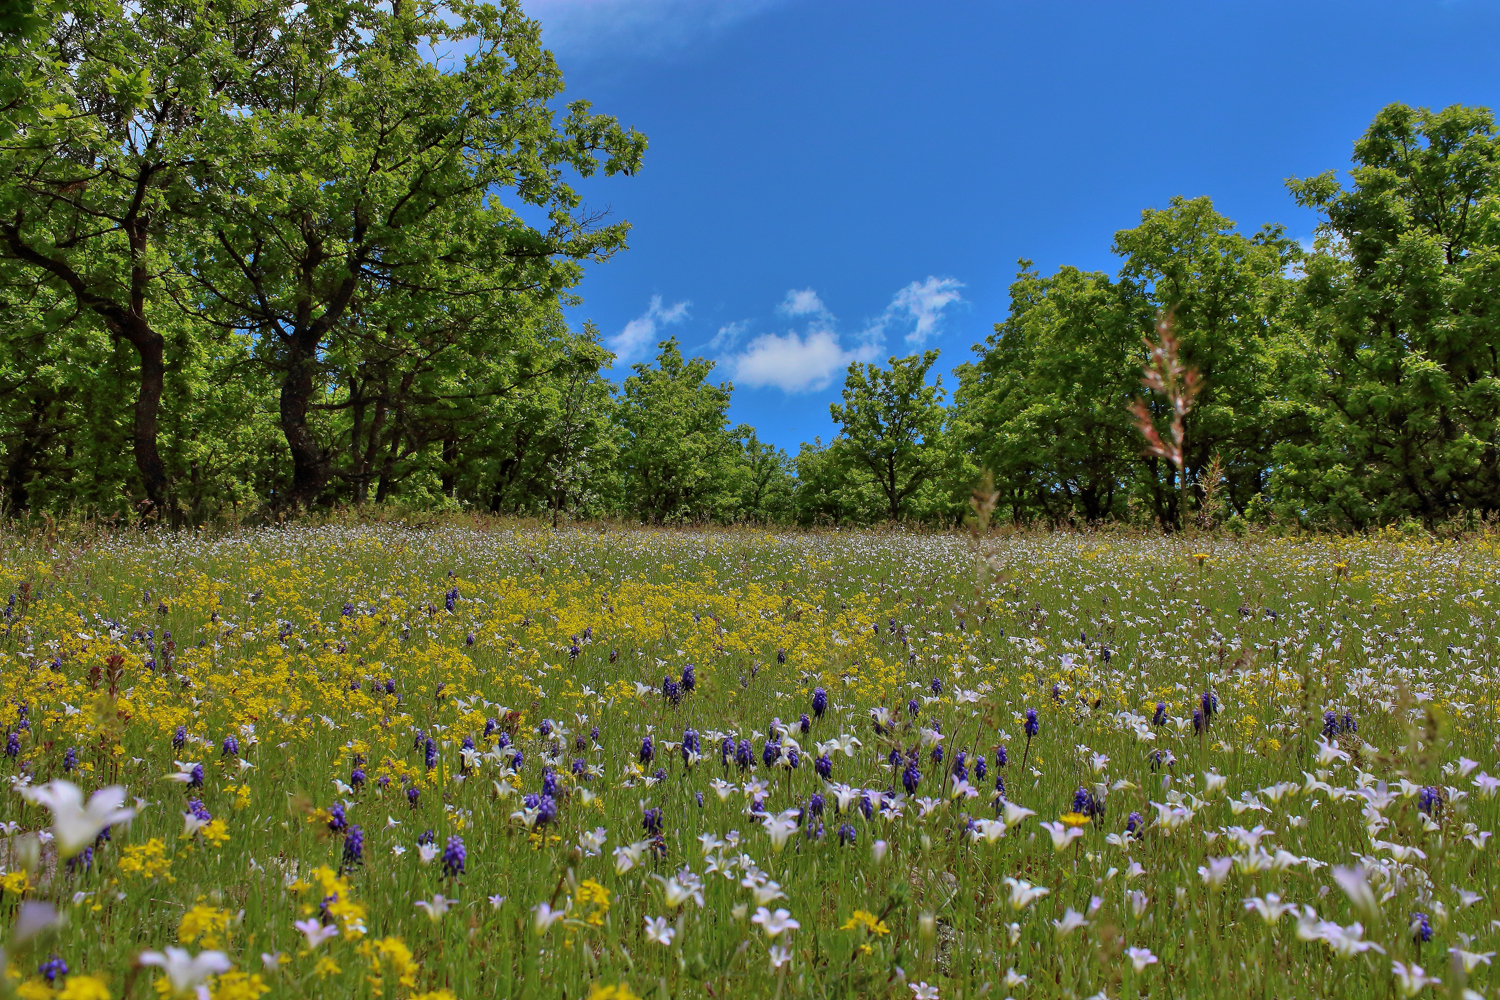 Wild flowers in spring neophron tours share this mightylinksfo Image collections